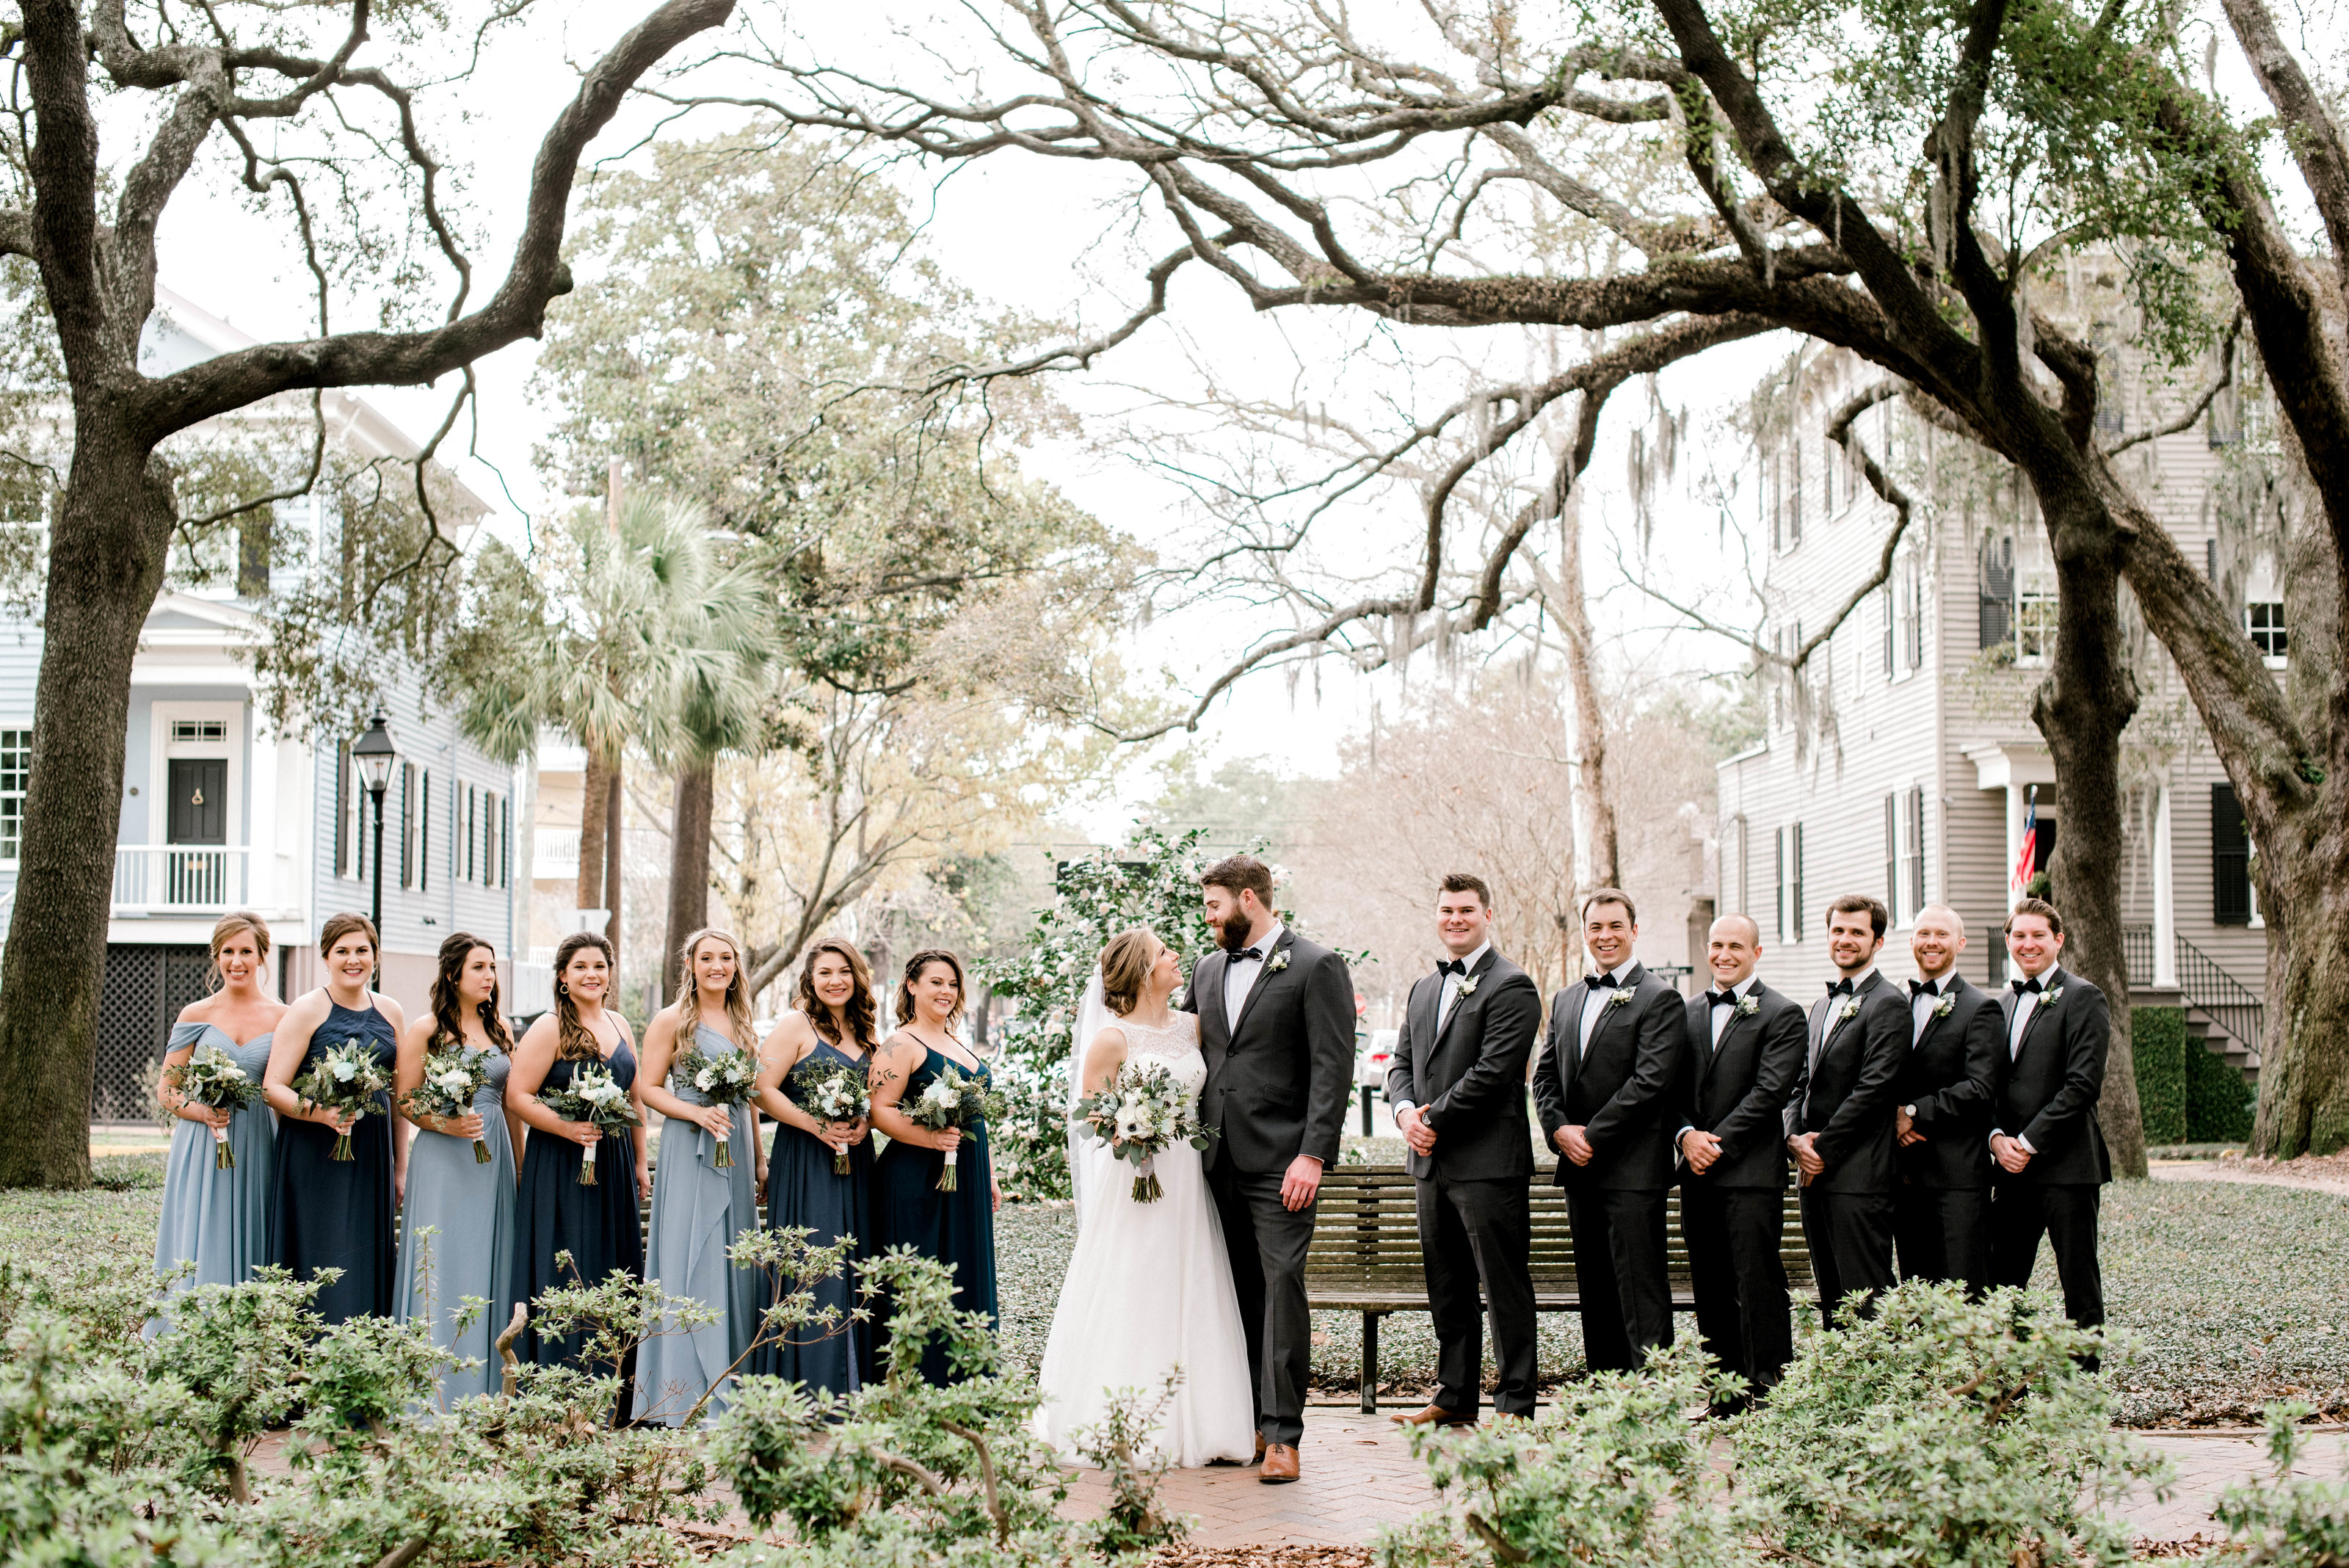 Pulaski Square Savannah Wedding Party Blue Spring